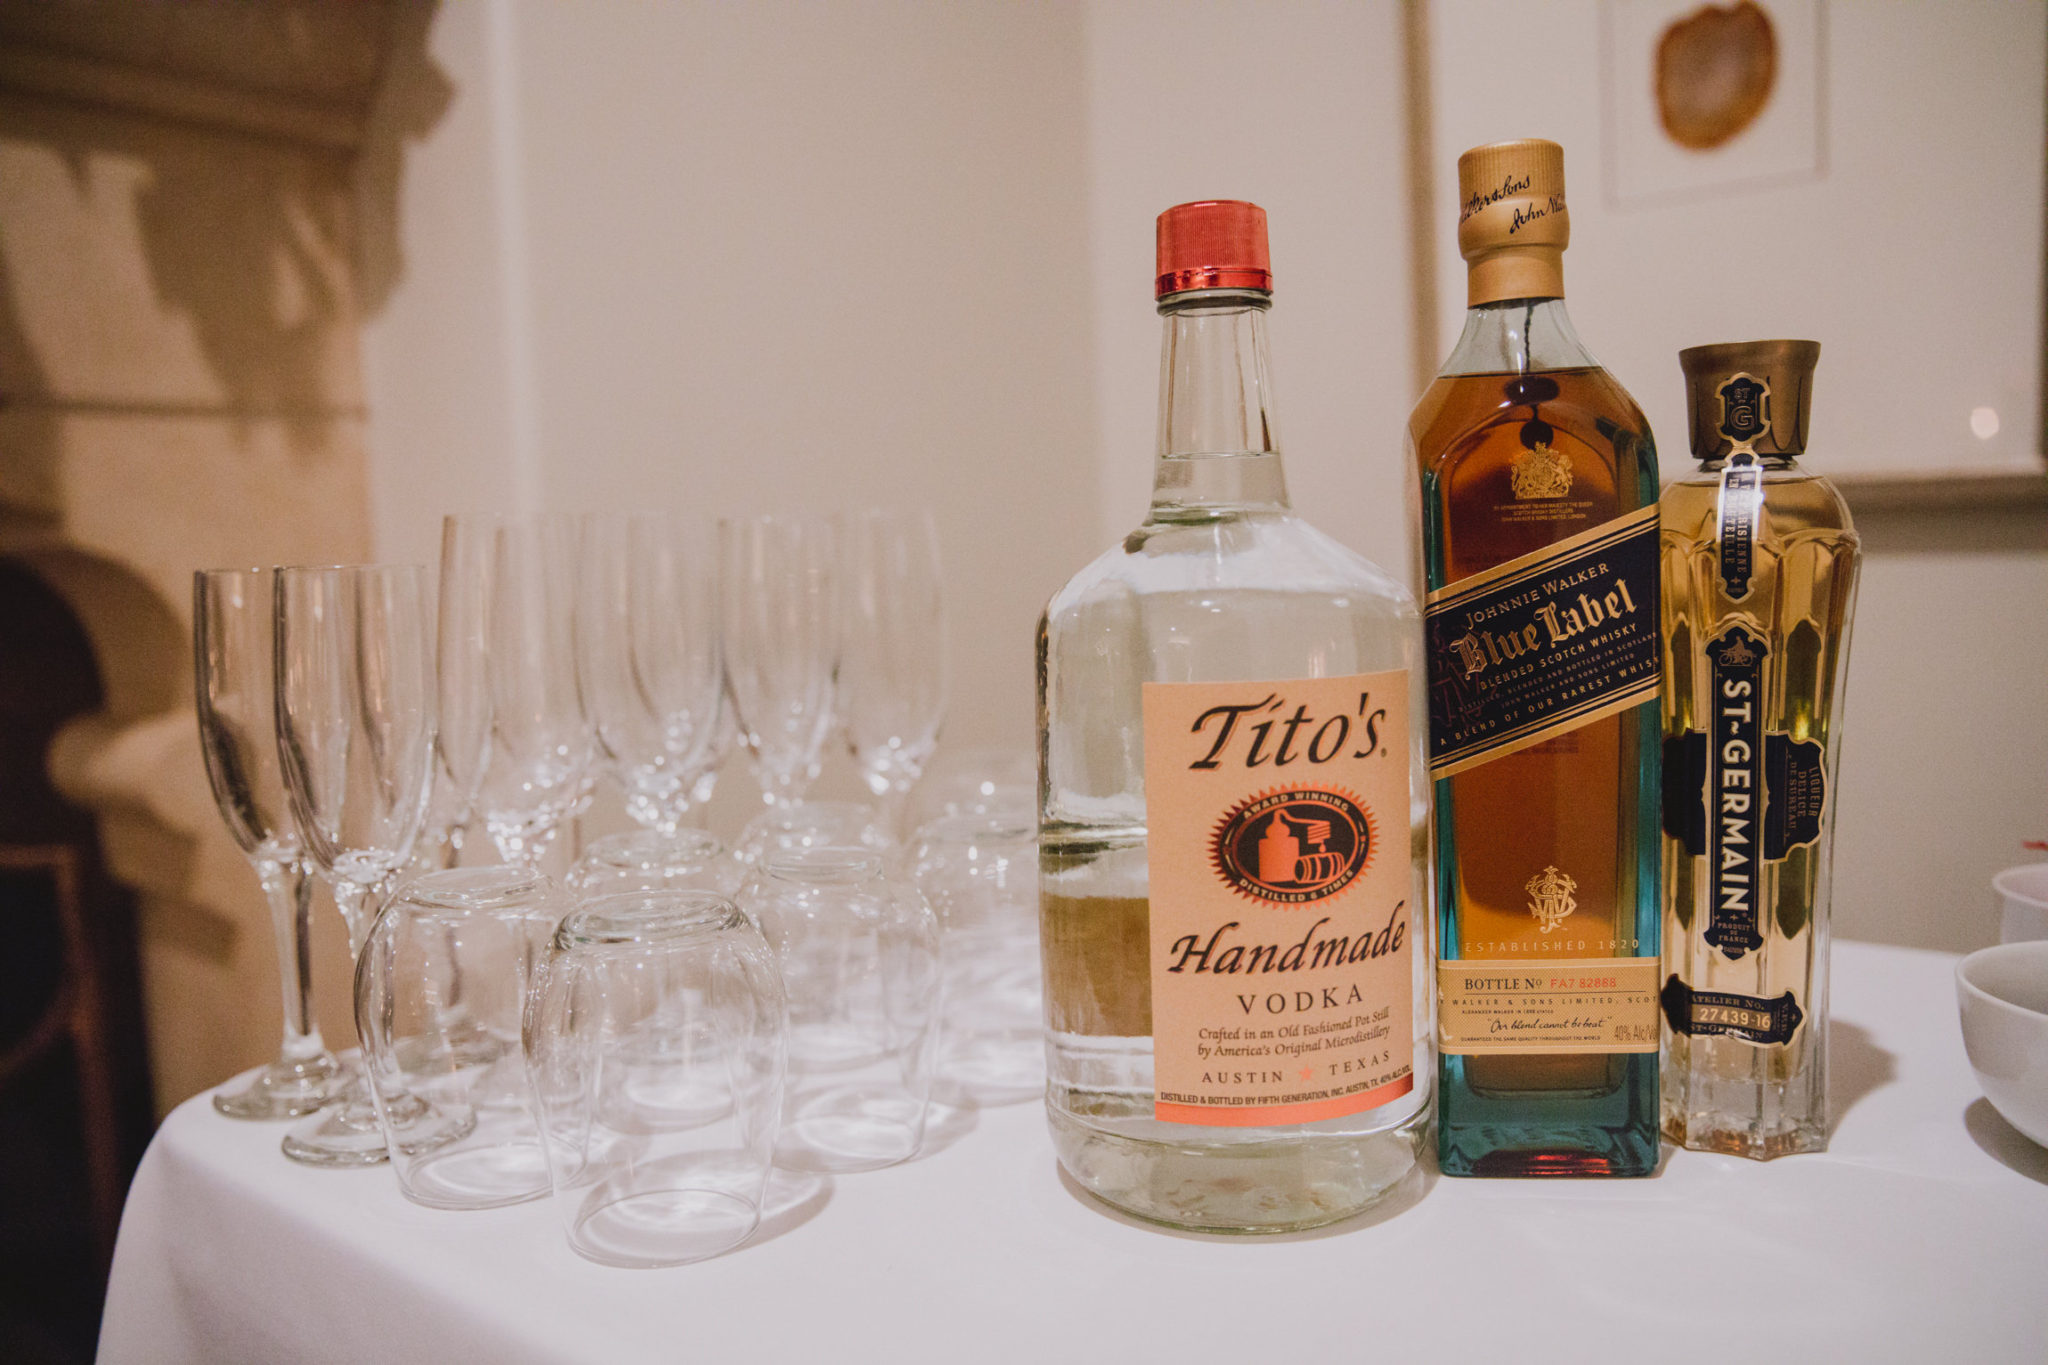 cocktail cart featuring Tito's handmade vodka, Johnnie Walker blue label, and St-Germain